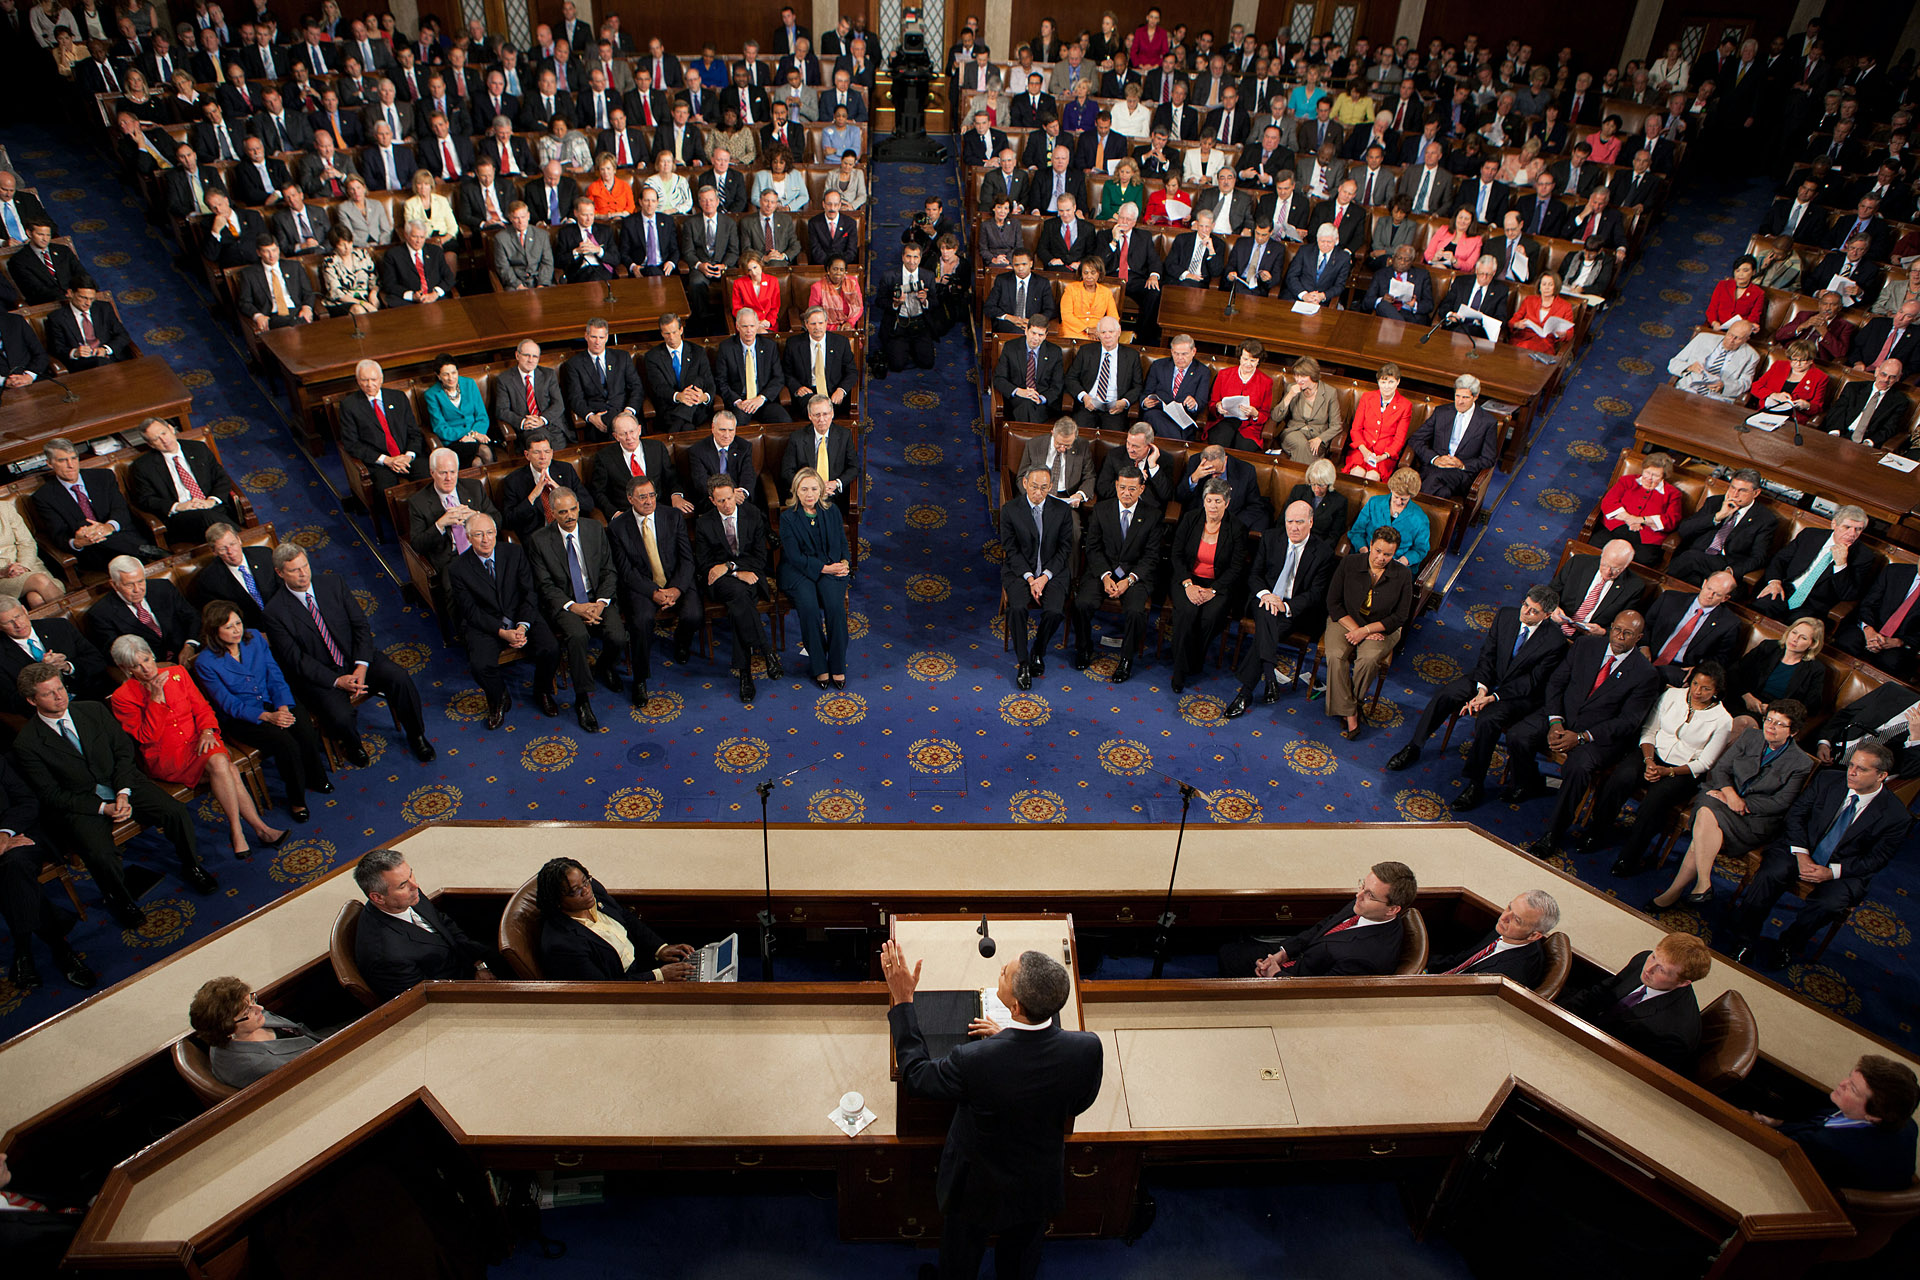 President Barack Obama Delivers An Address To Congress